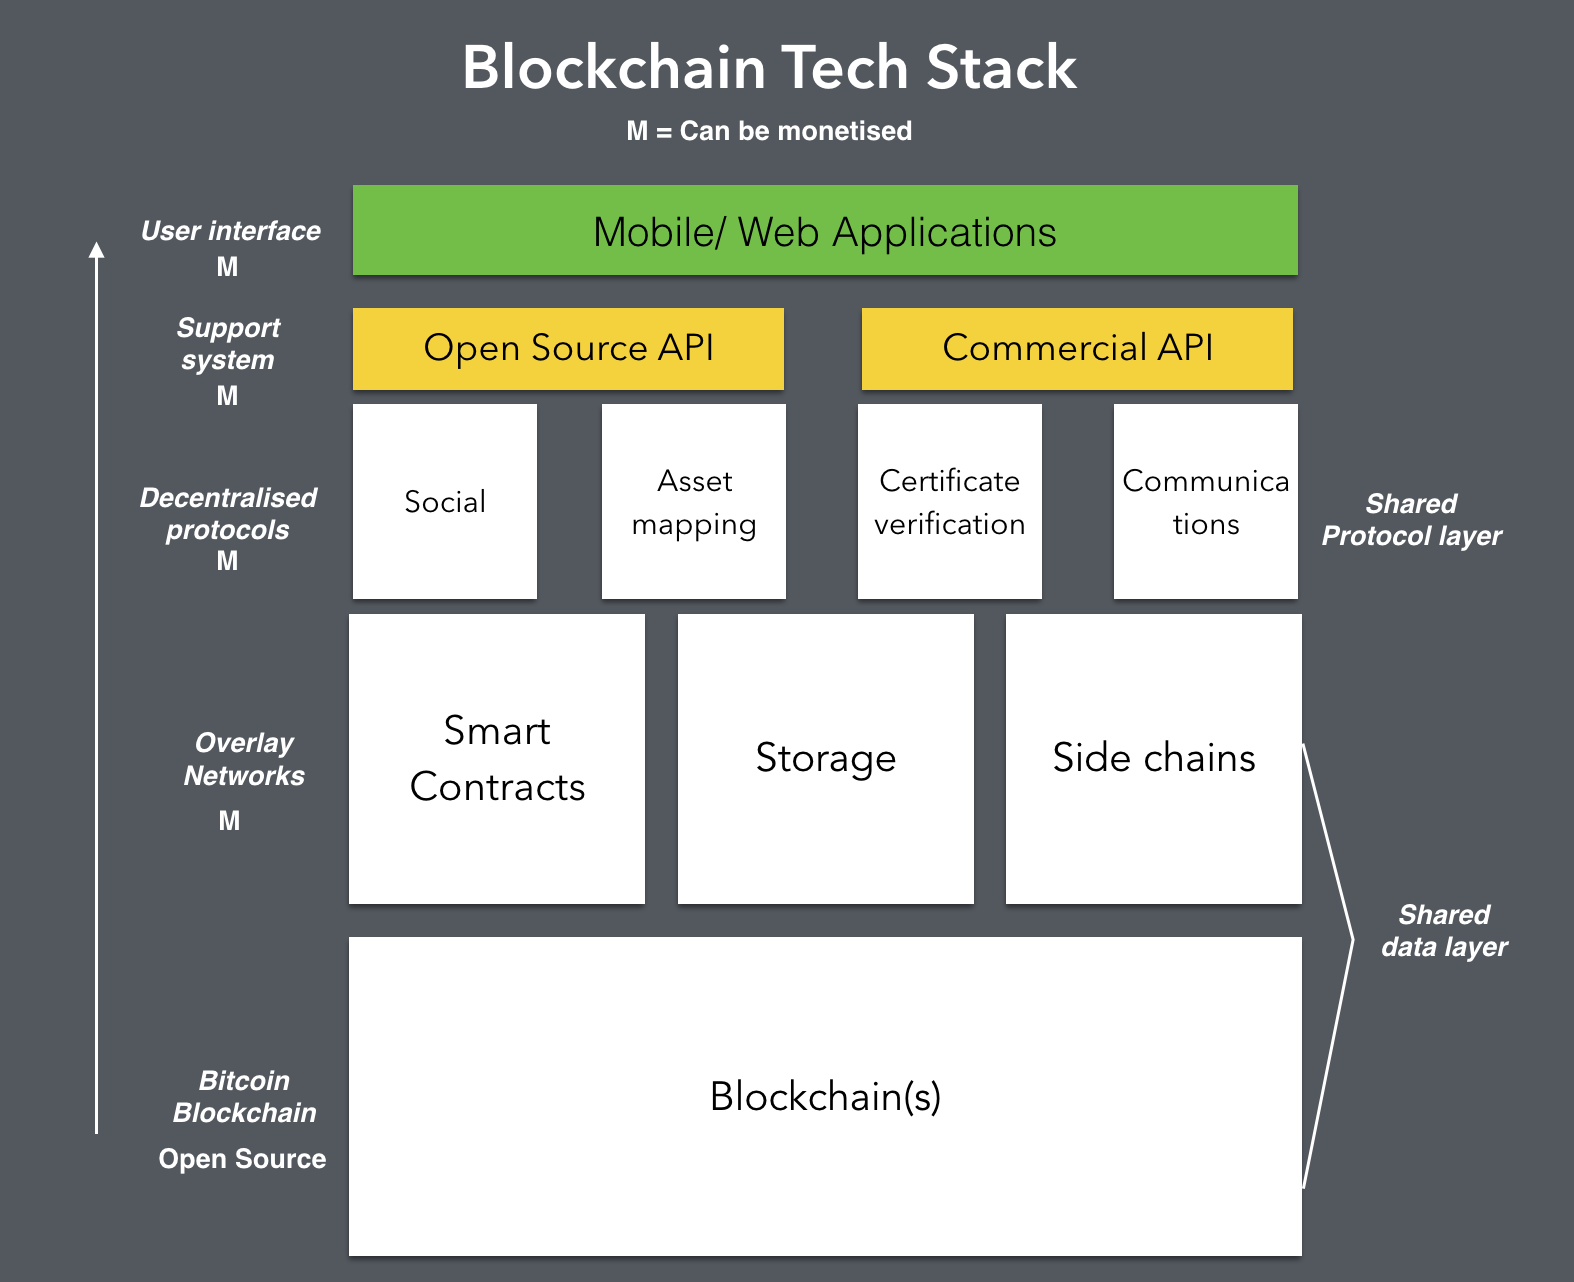 stack blockchain technology tech software bitcoin does diagram application development roadmap companies company martech data marketing cryptocurrency